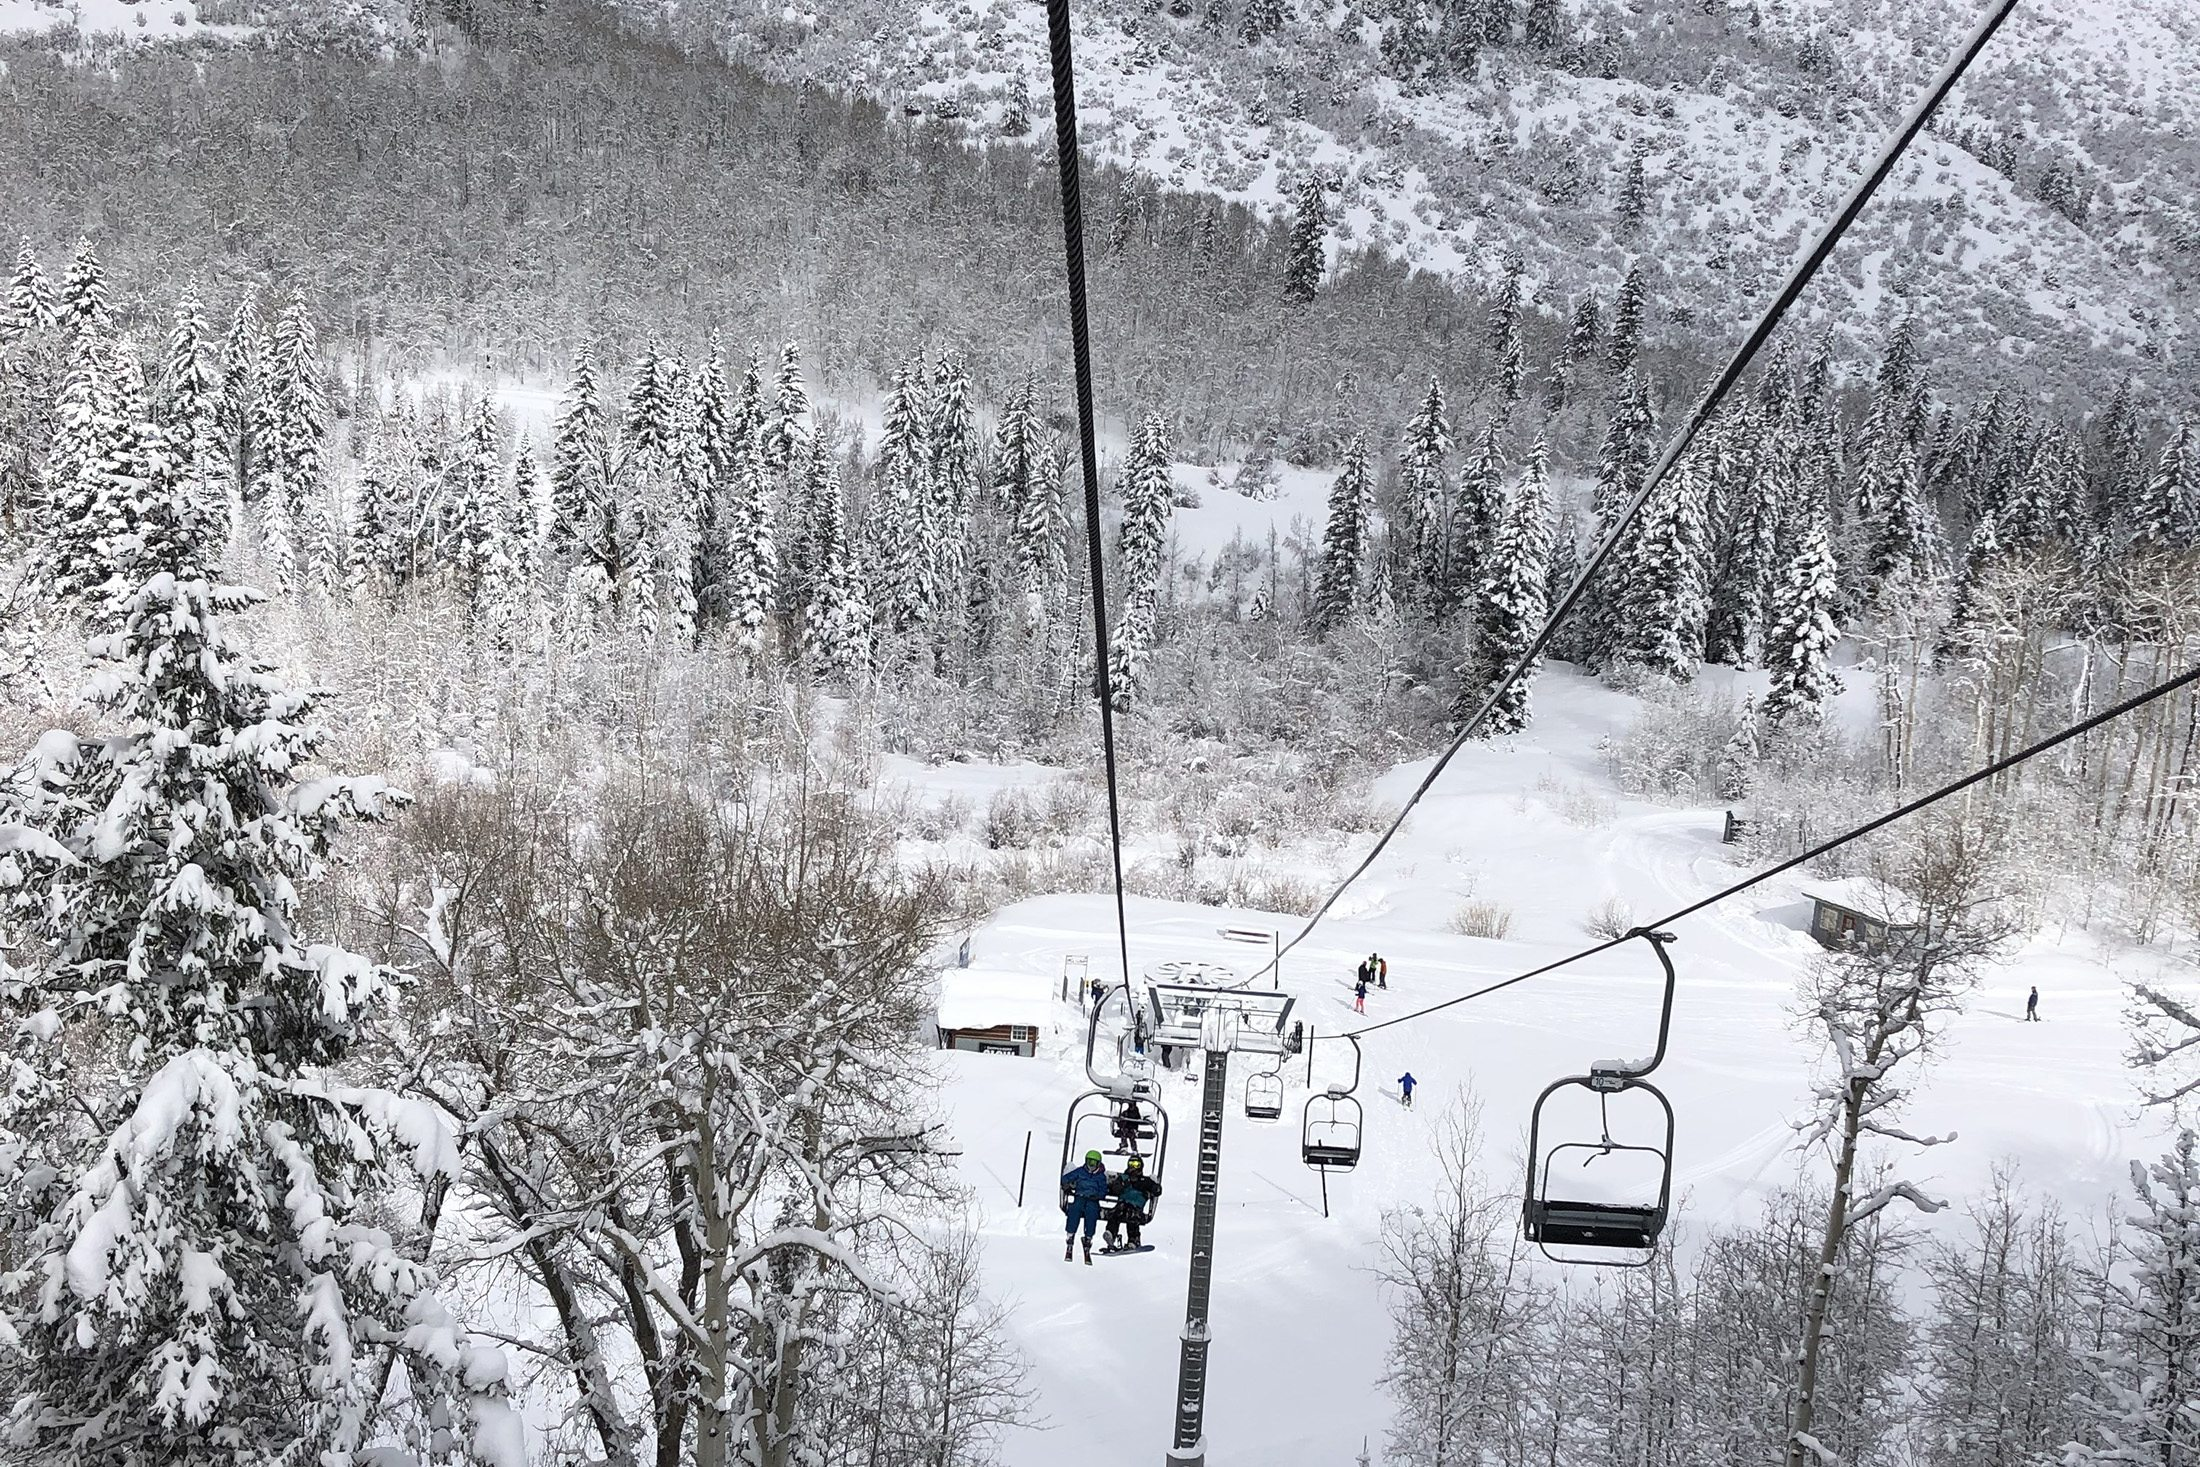 Do I Need a Reservation to Ski? What Epic & Ikon Pass-Holders Need to Know